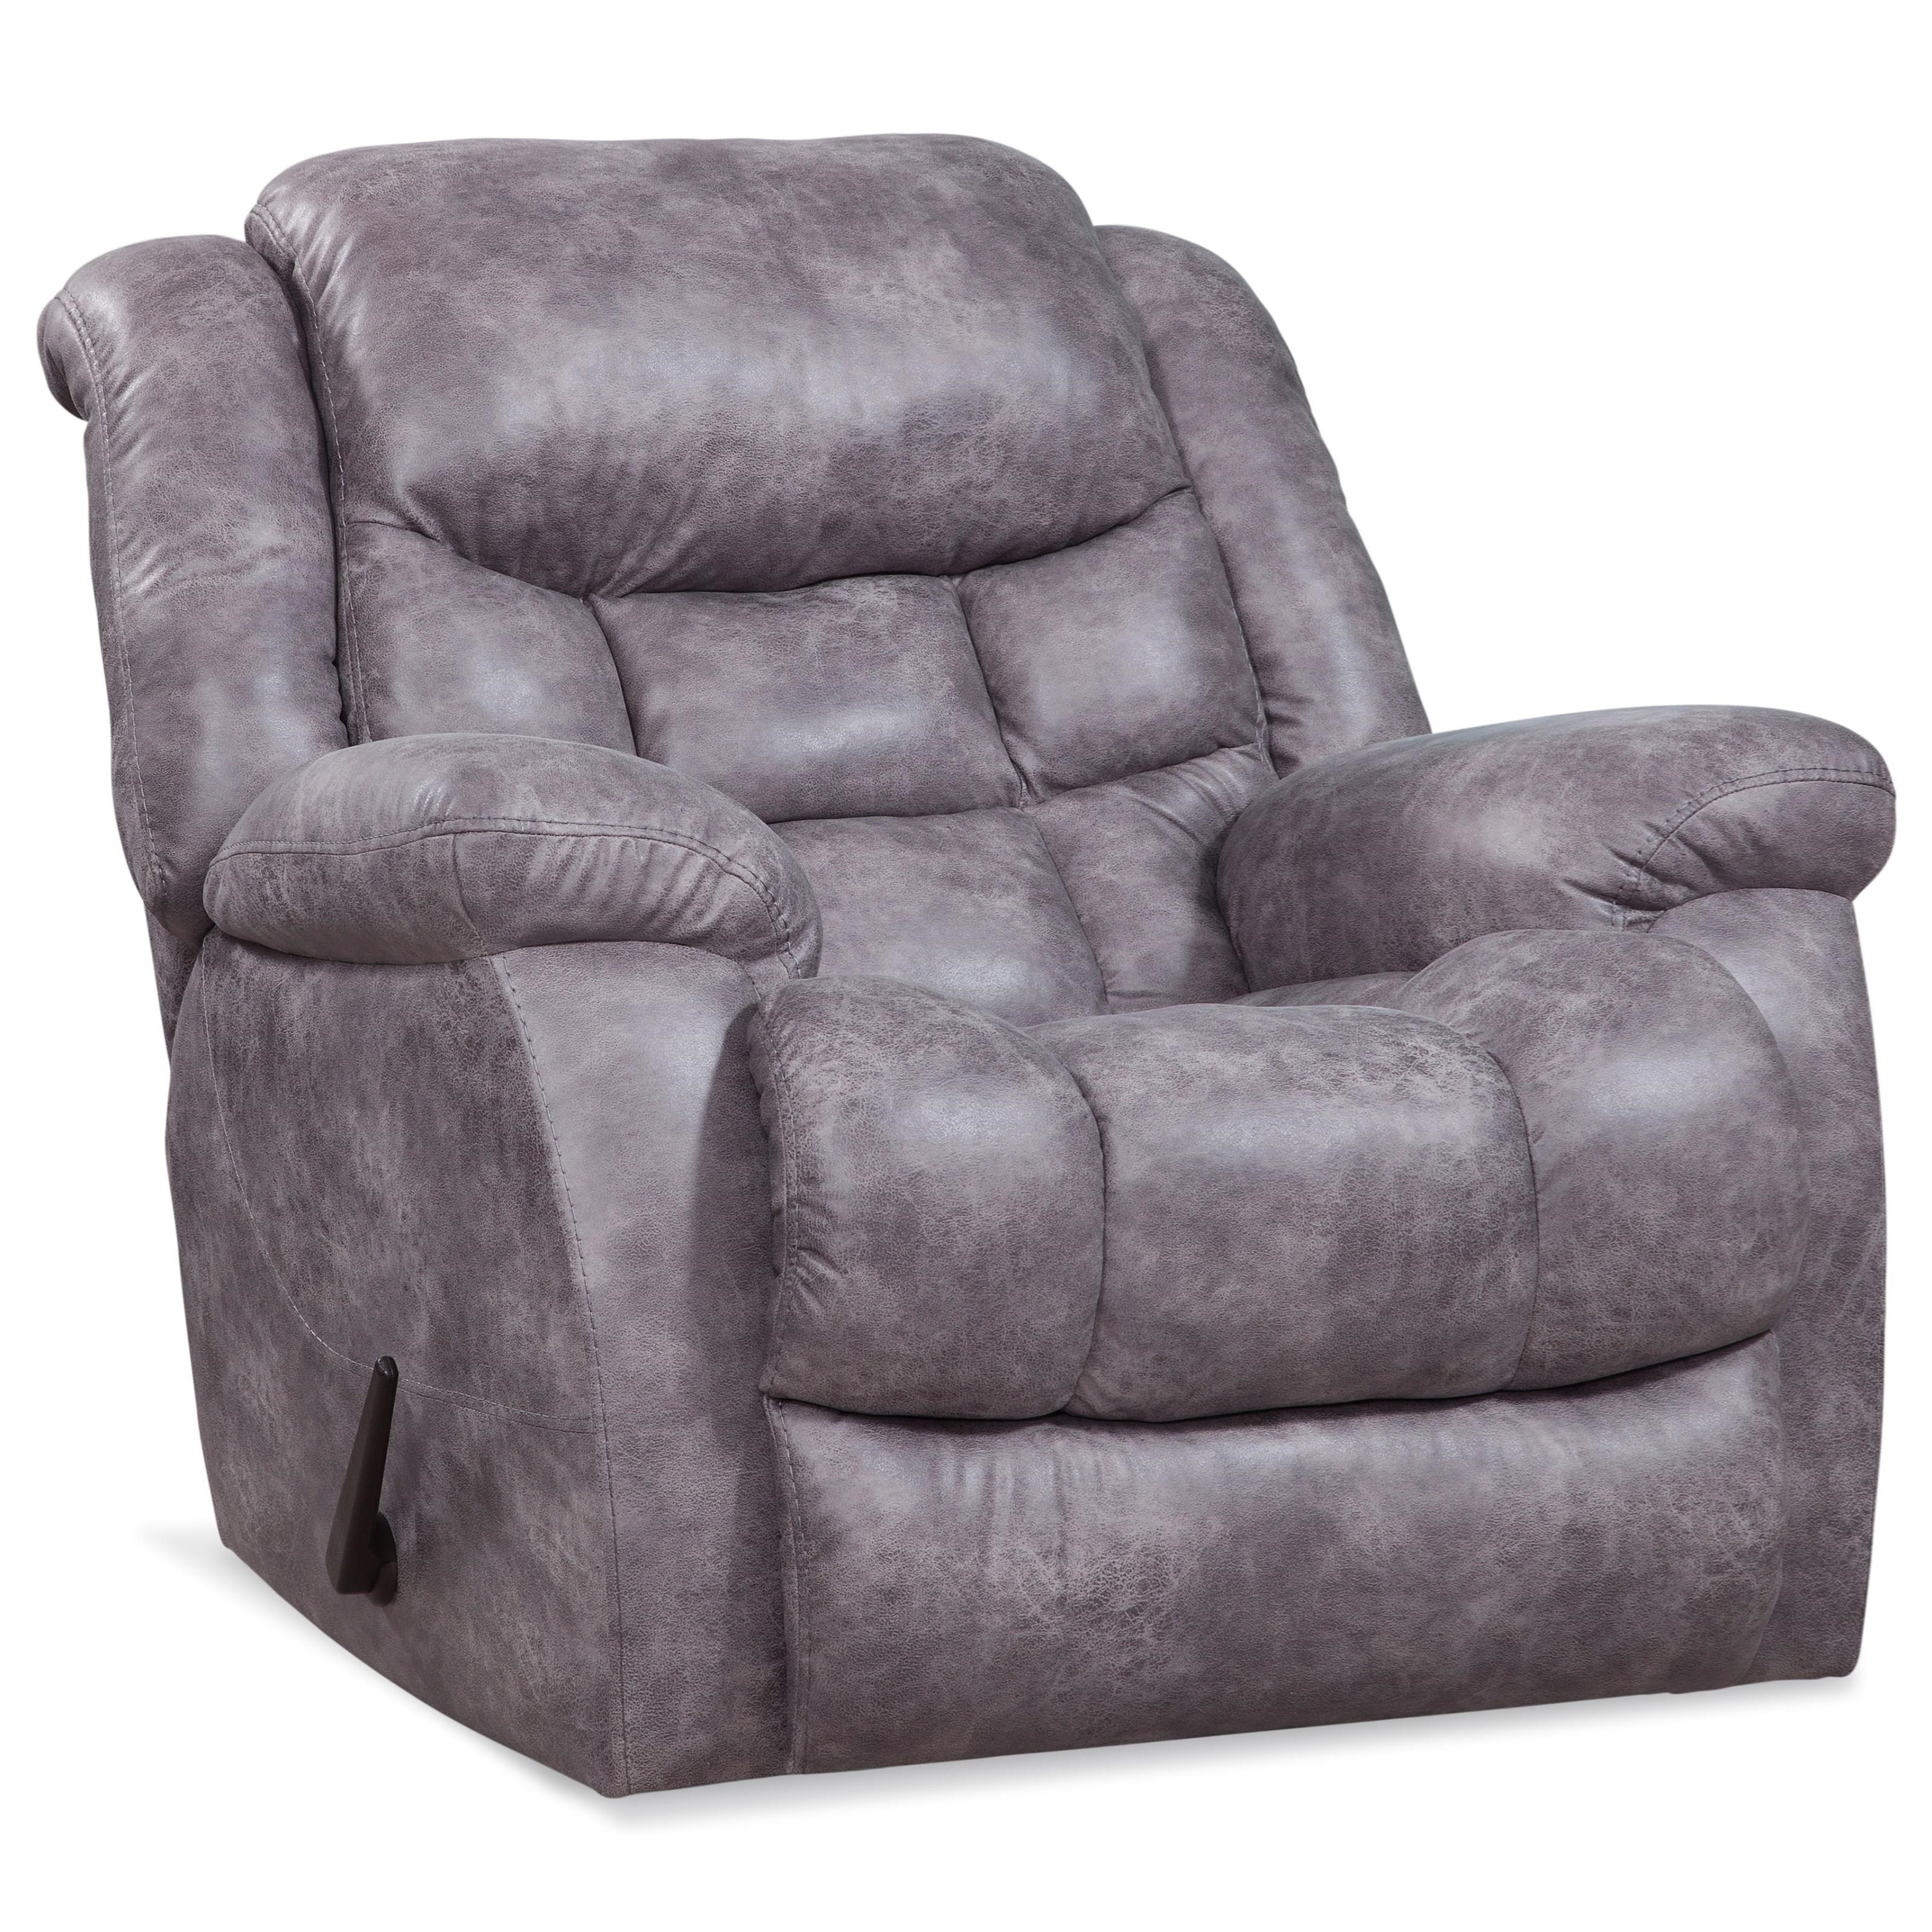 169 Plush Rocker Recliner by HomeStretch at O'Dunk & O'Bright Furniture